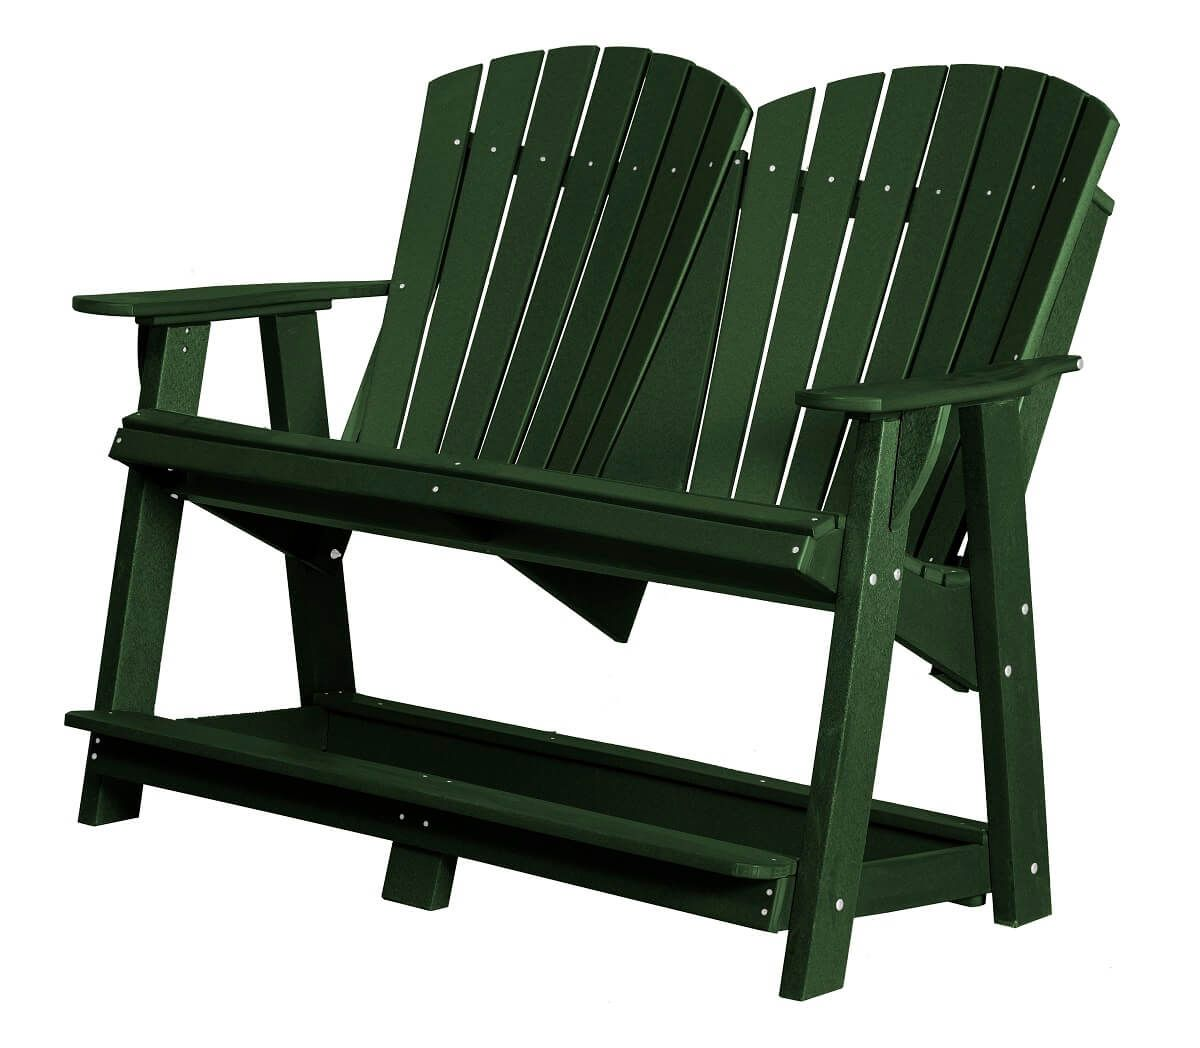 Turf Green Sidra Double High Adirondack